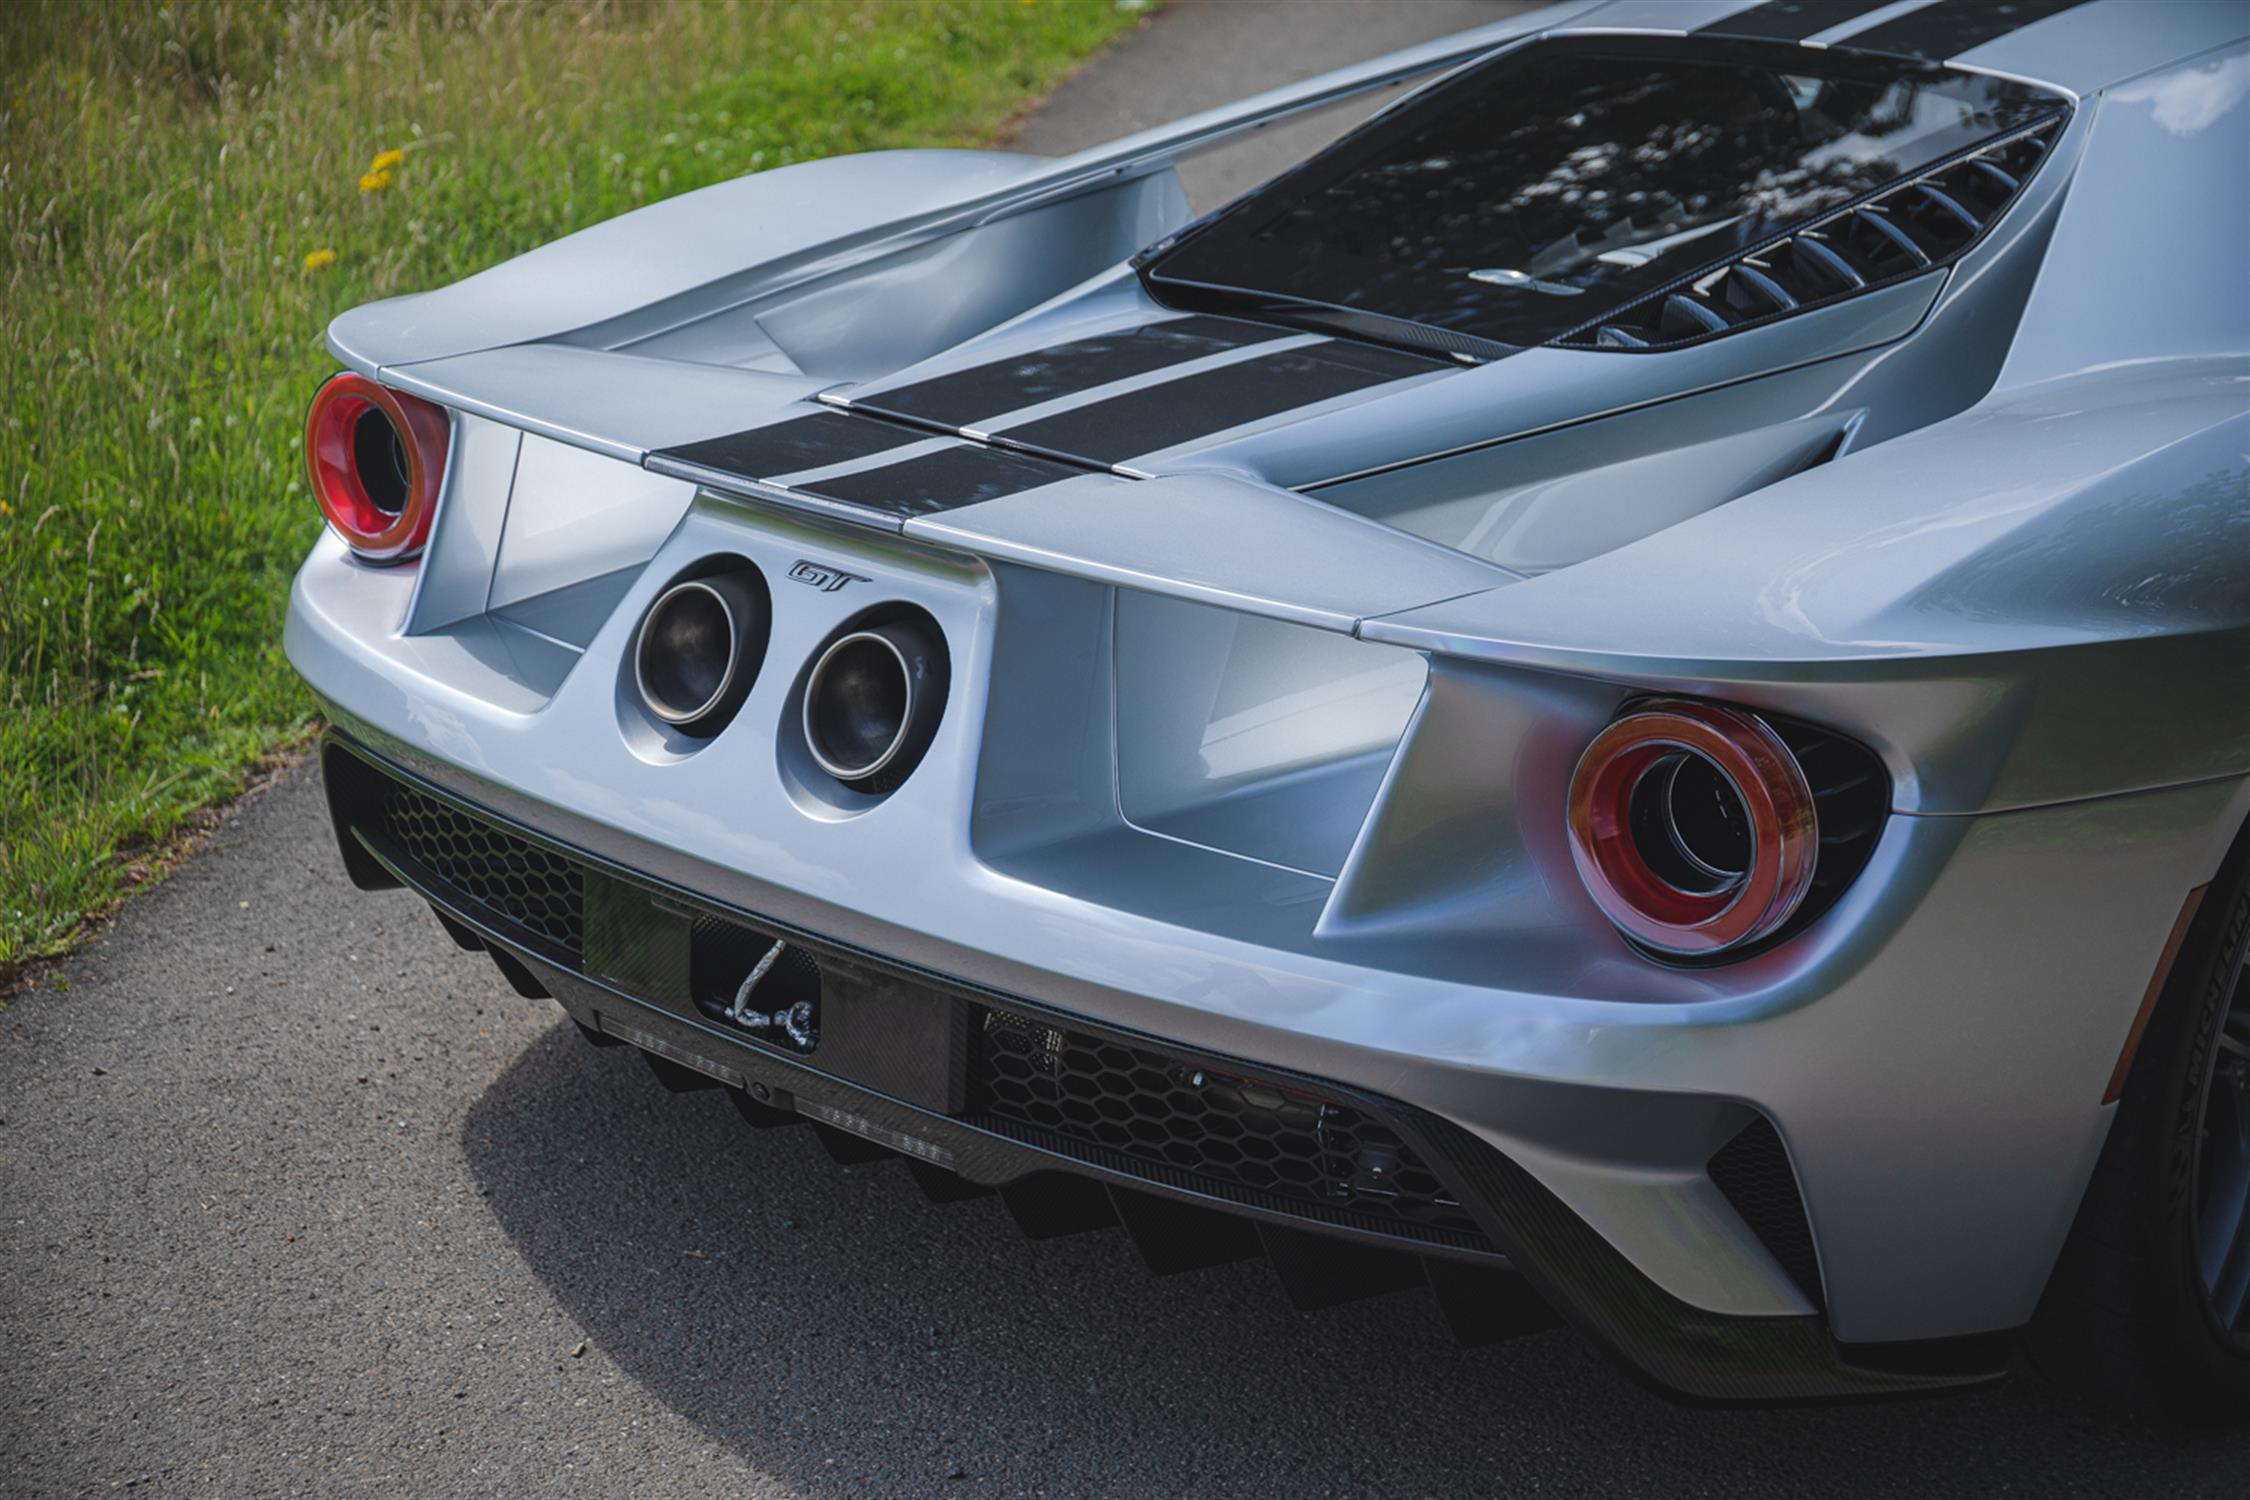 2018 Ford GT - Image 20 of 20